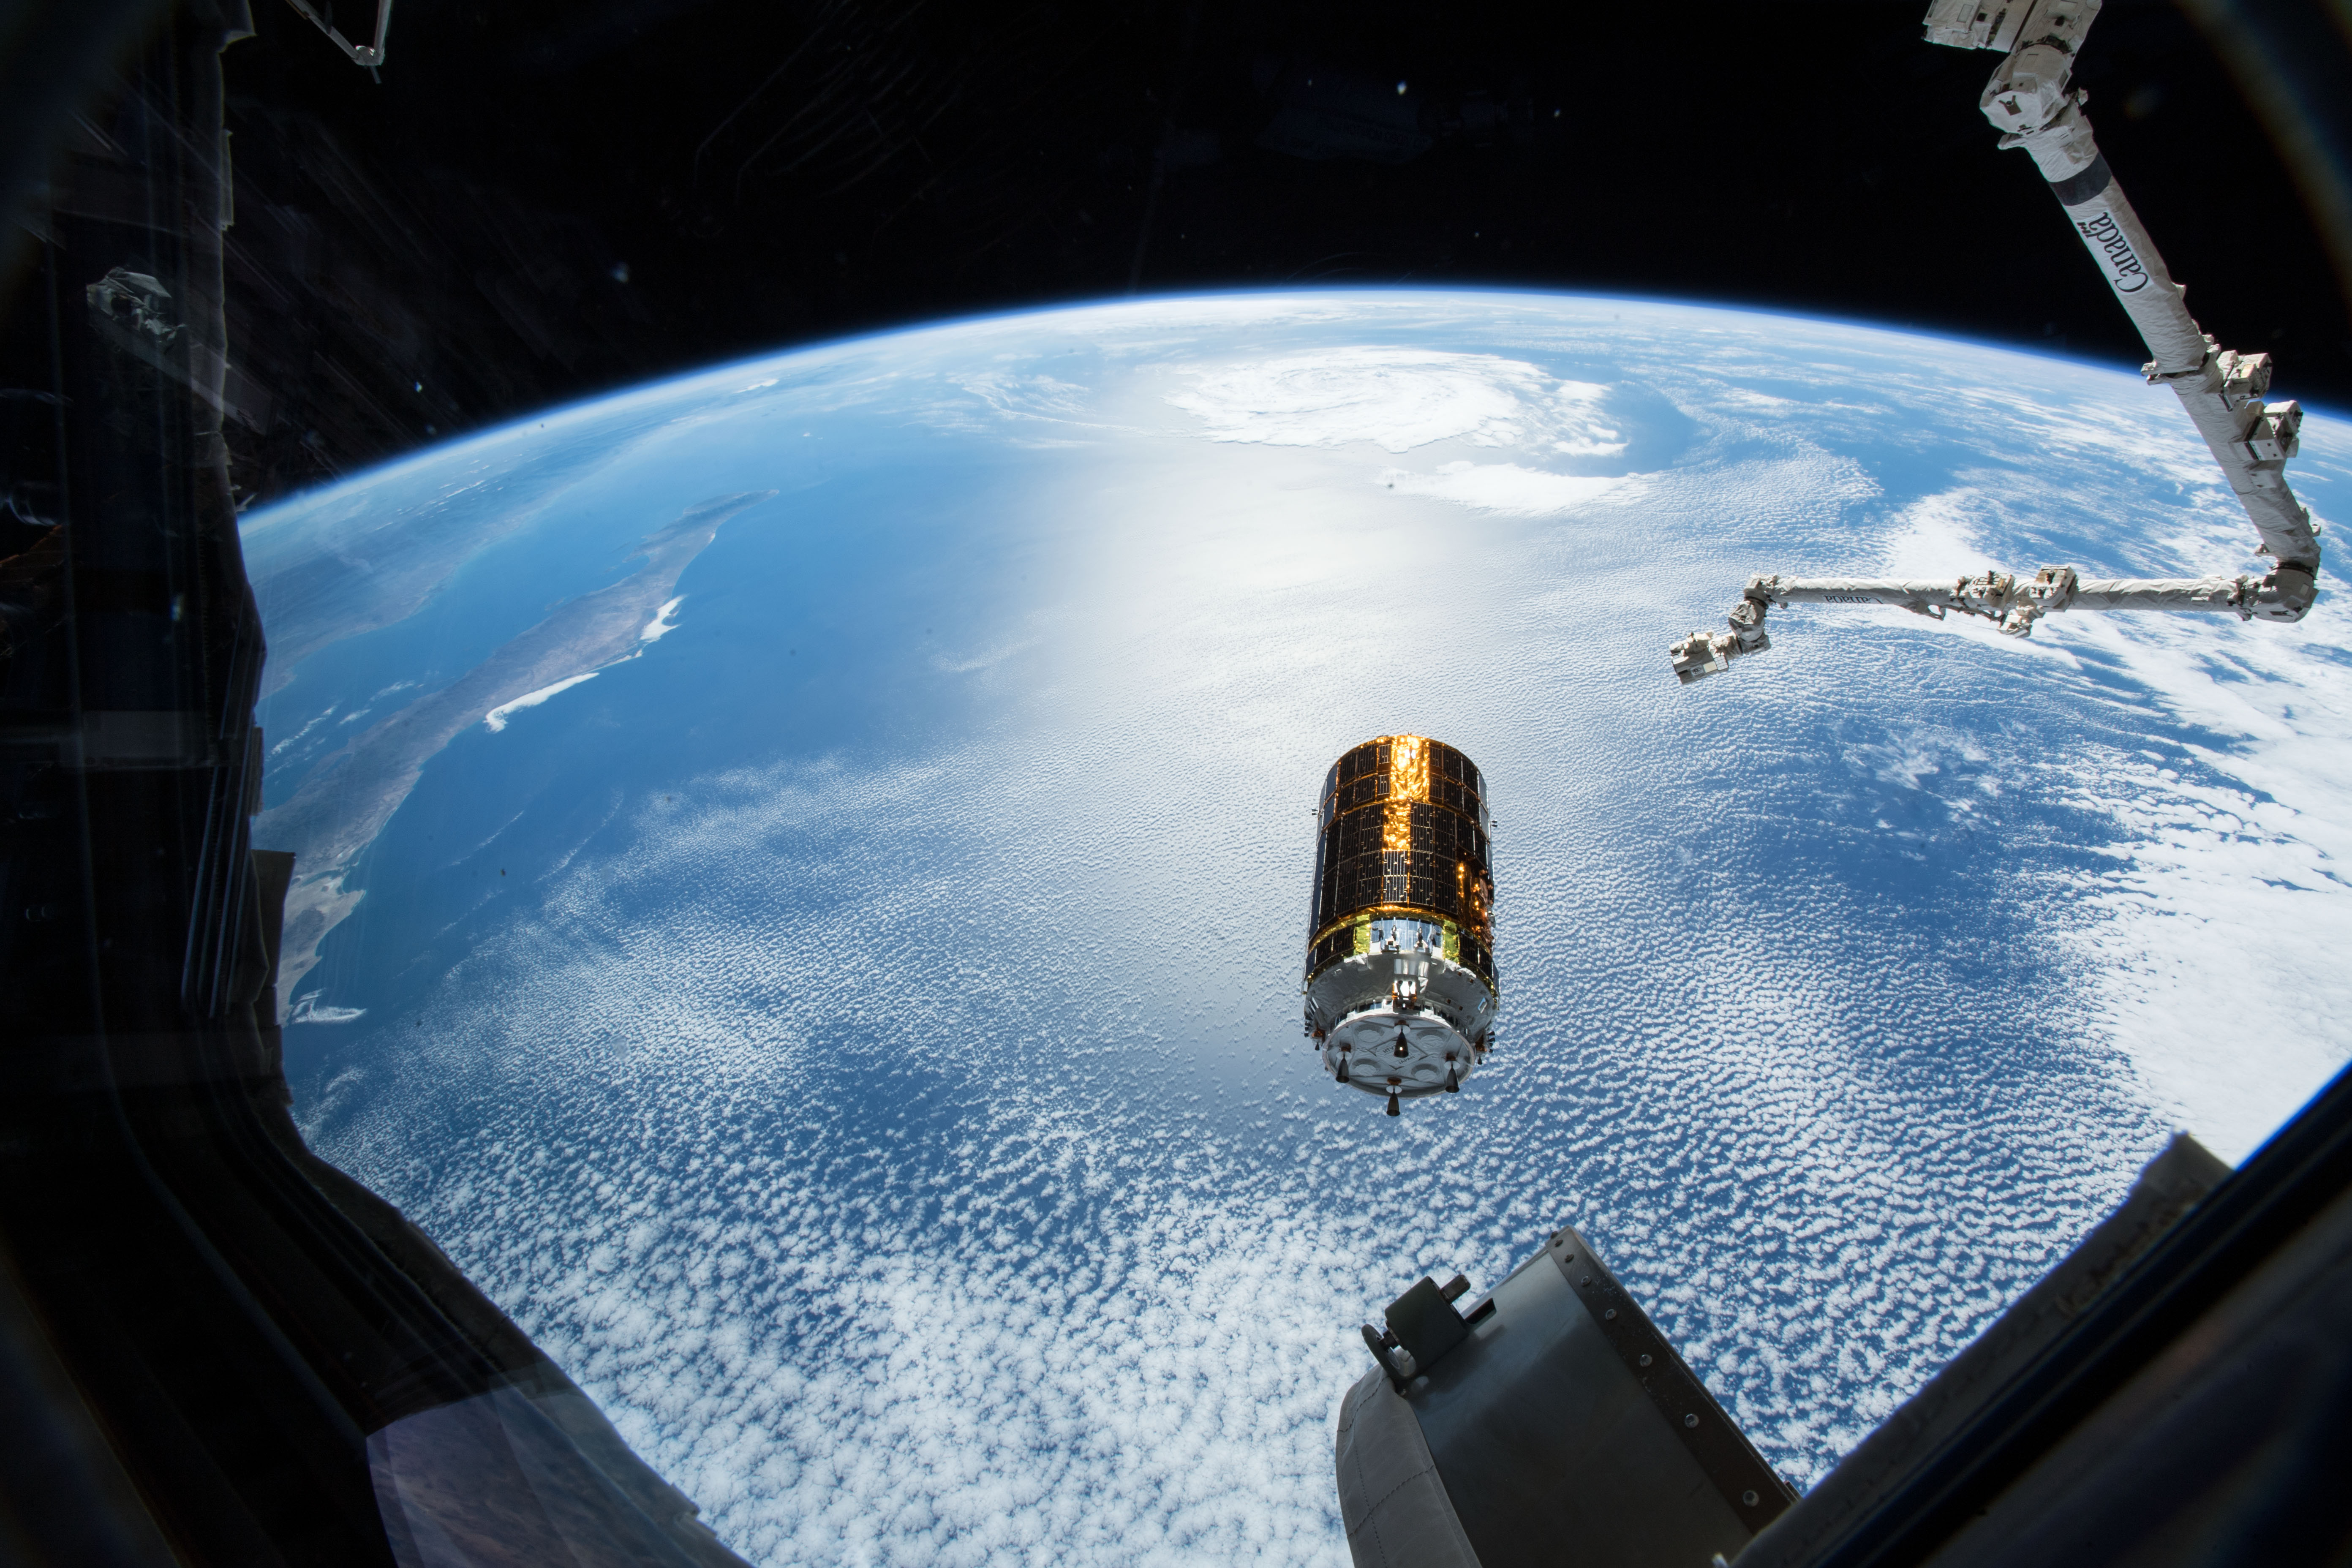 The Japan Aerospace Exploration Agency's uncrewed cargo transfer craft, called HTV, will deliver supplies and new investigations to the International Space Station.